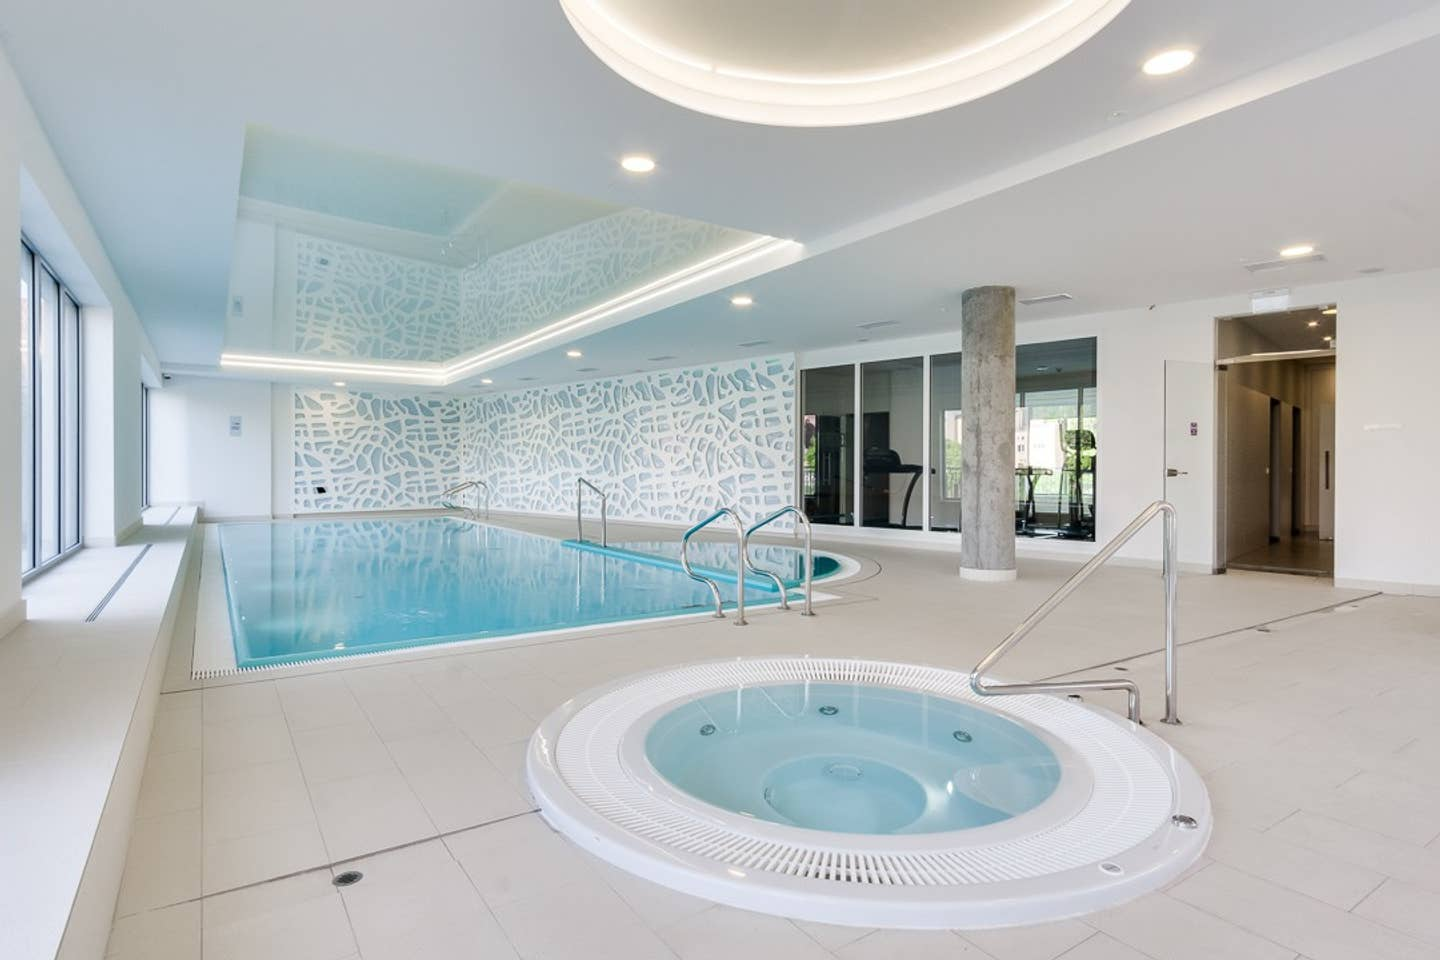 Apartment Waterlane swimming pool  sauna  fitness included in the offer photo 19148564